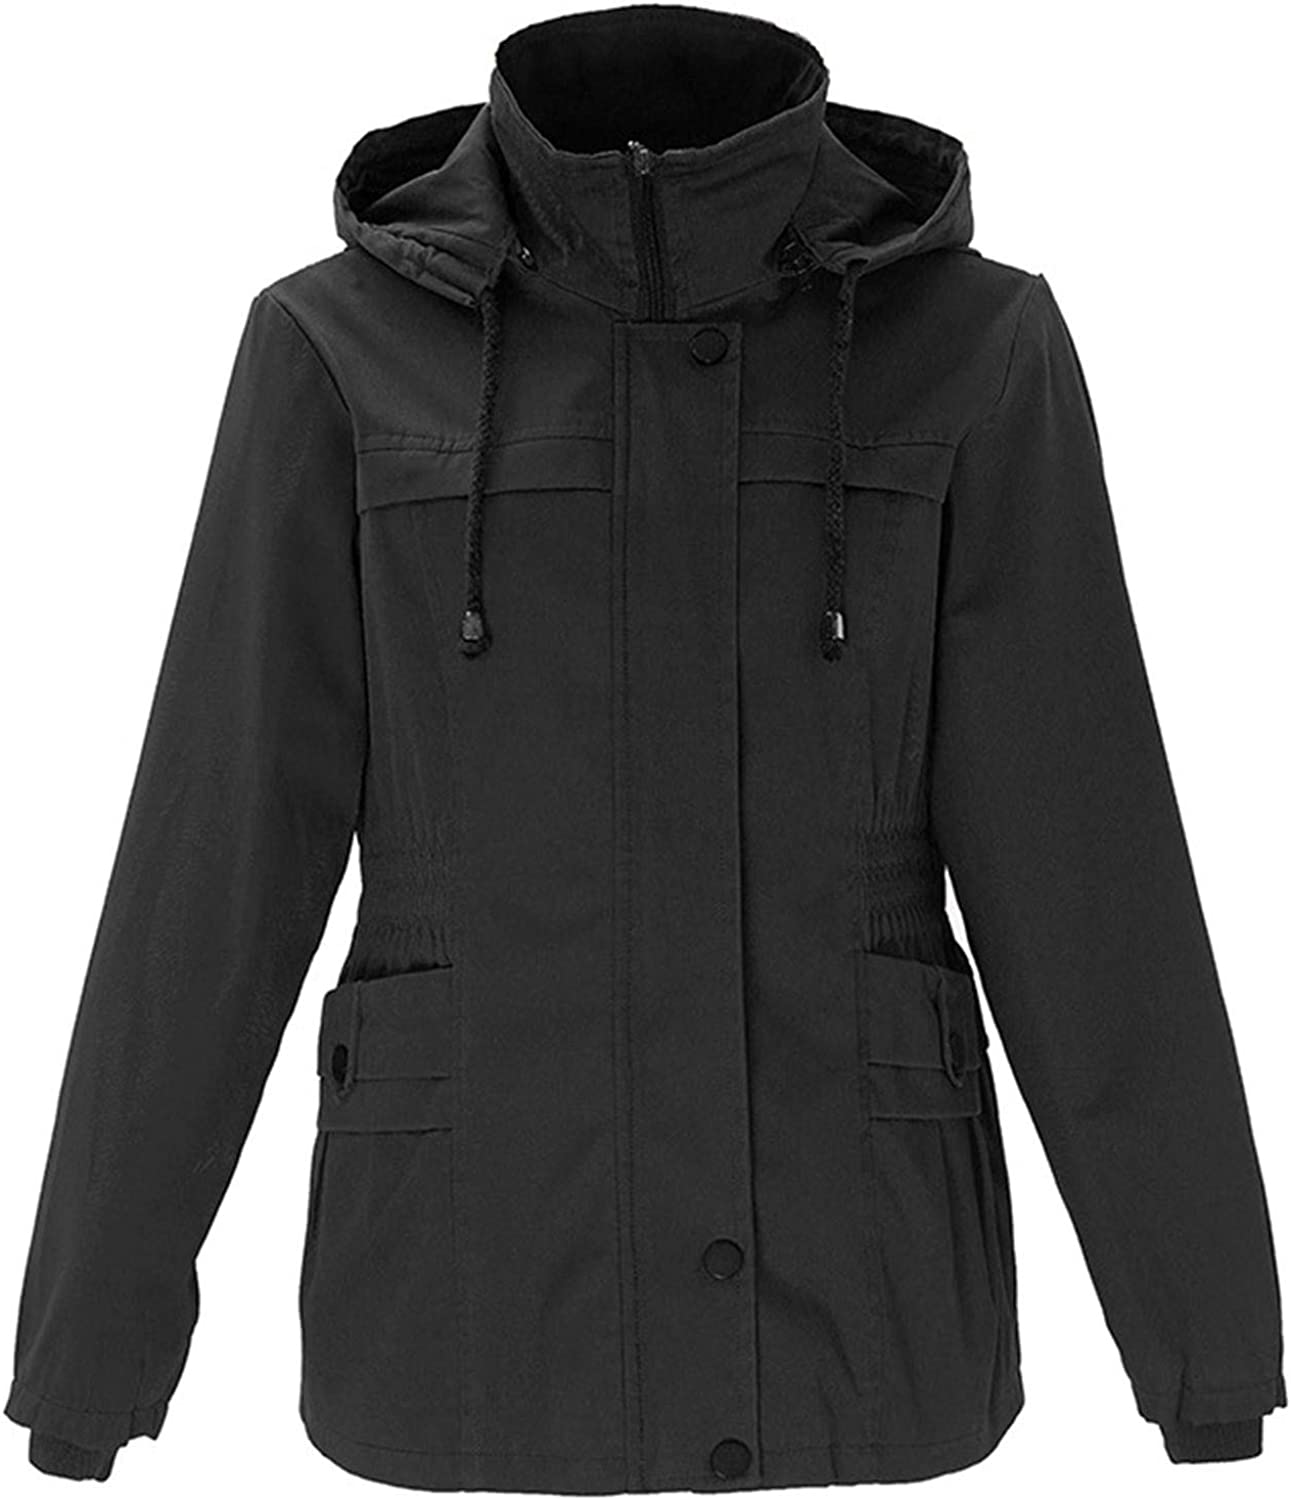 HGWXX7 Womens Coat Plus Size Zip Hooded Drawstring Jack New product type Parka Up Deluxe